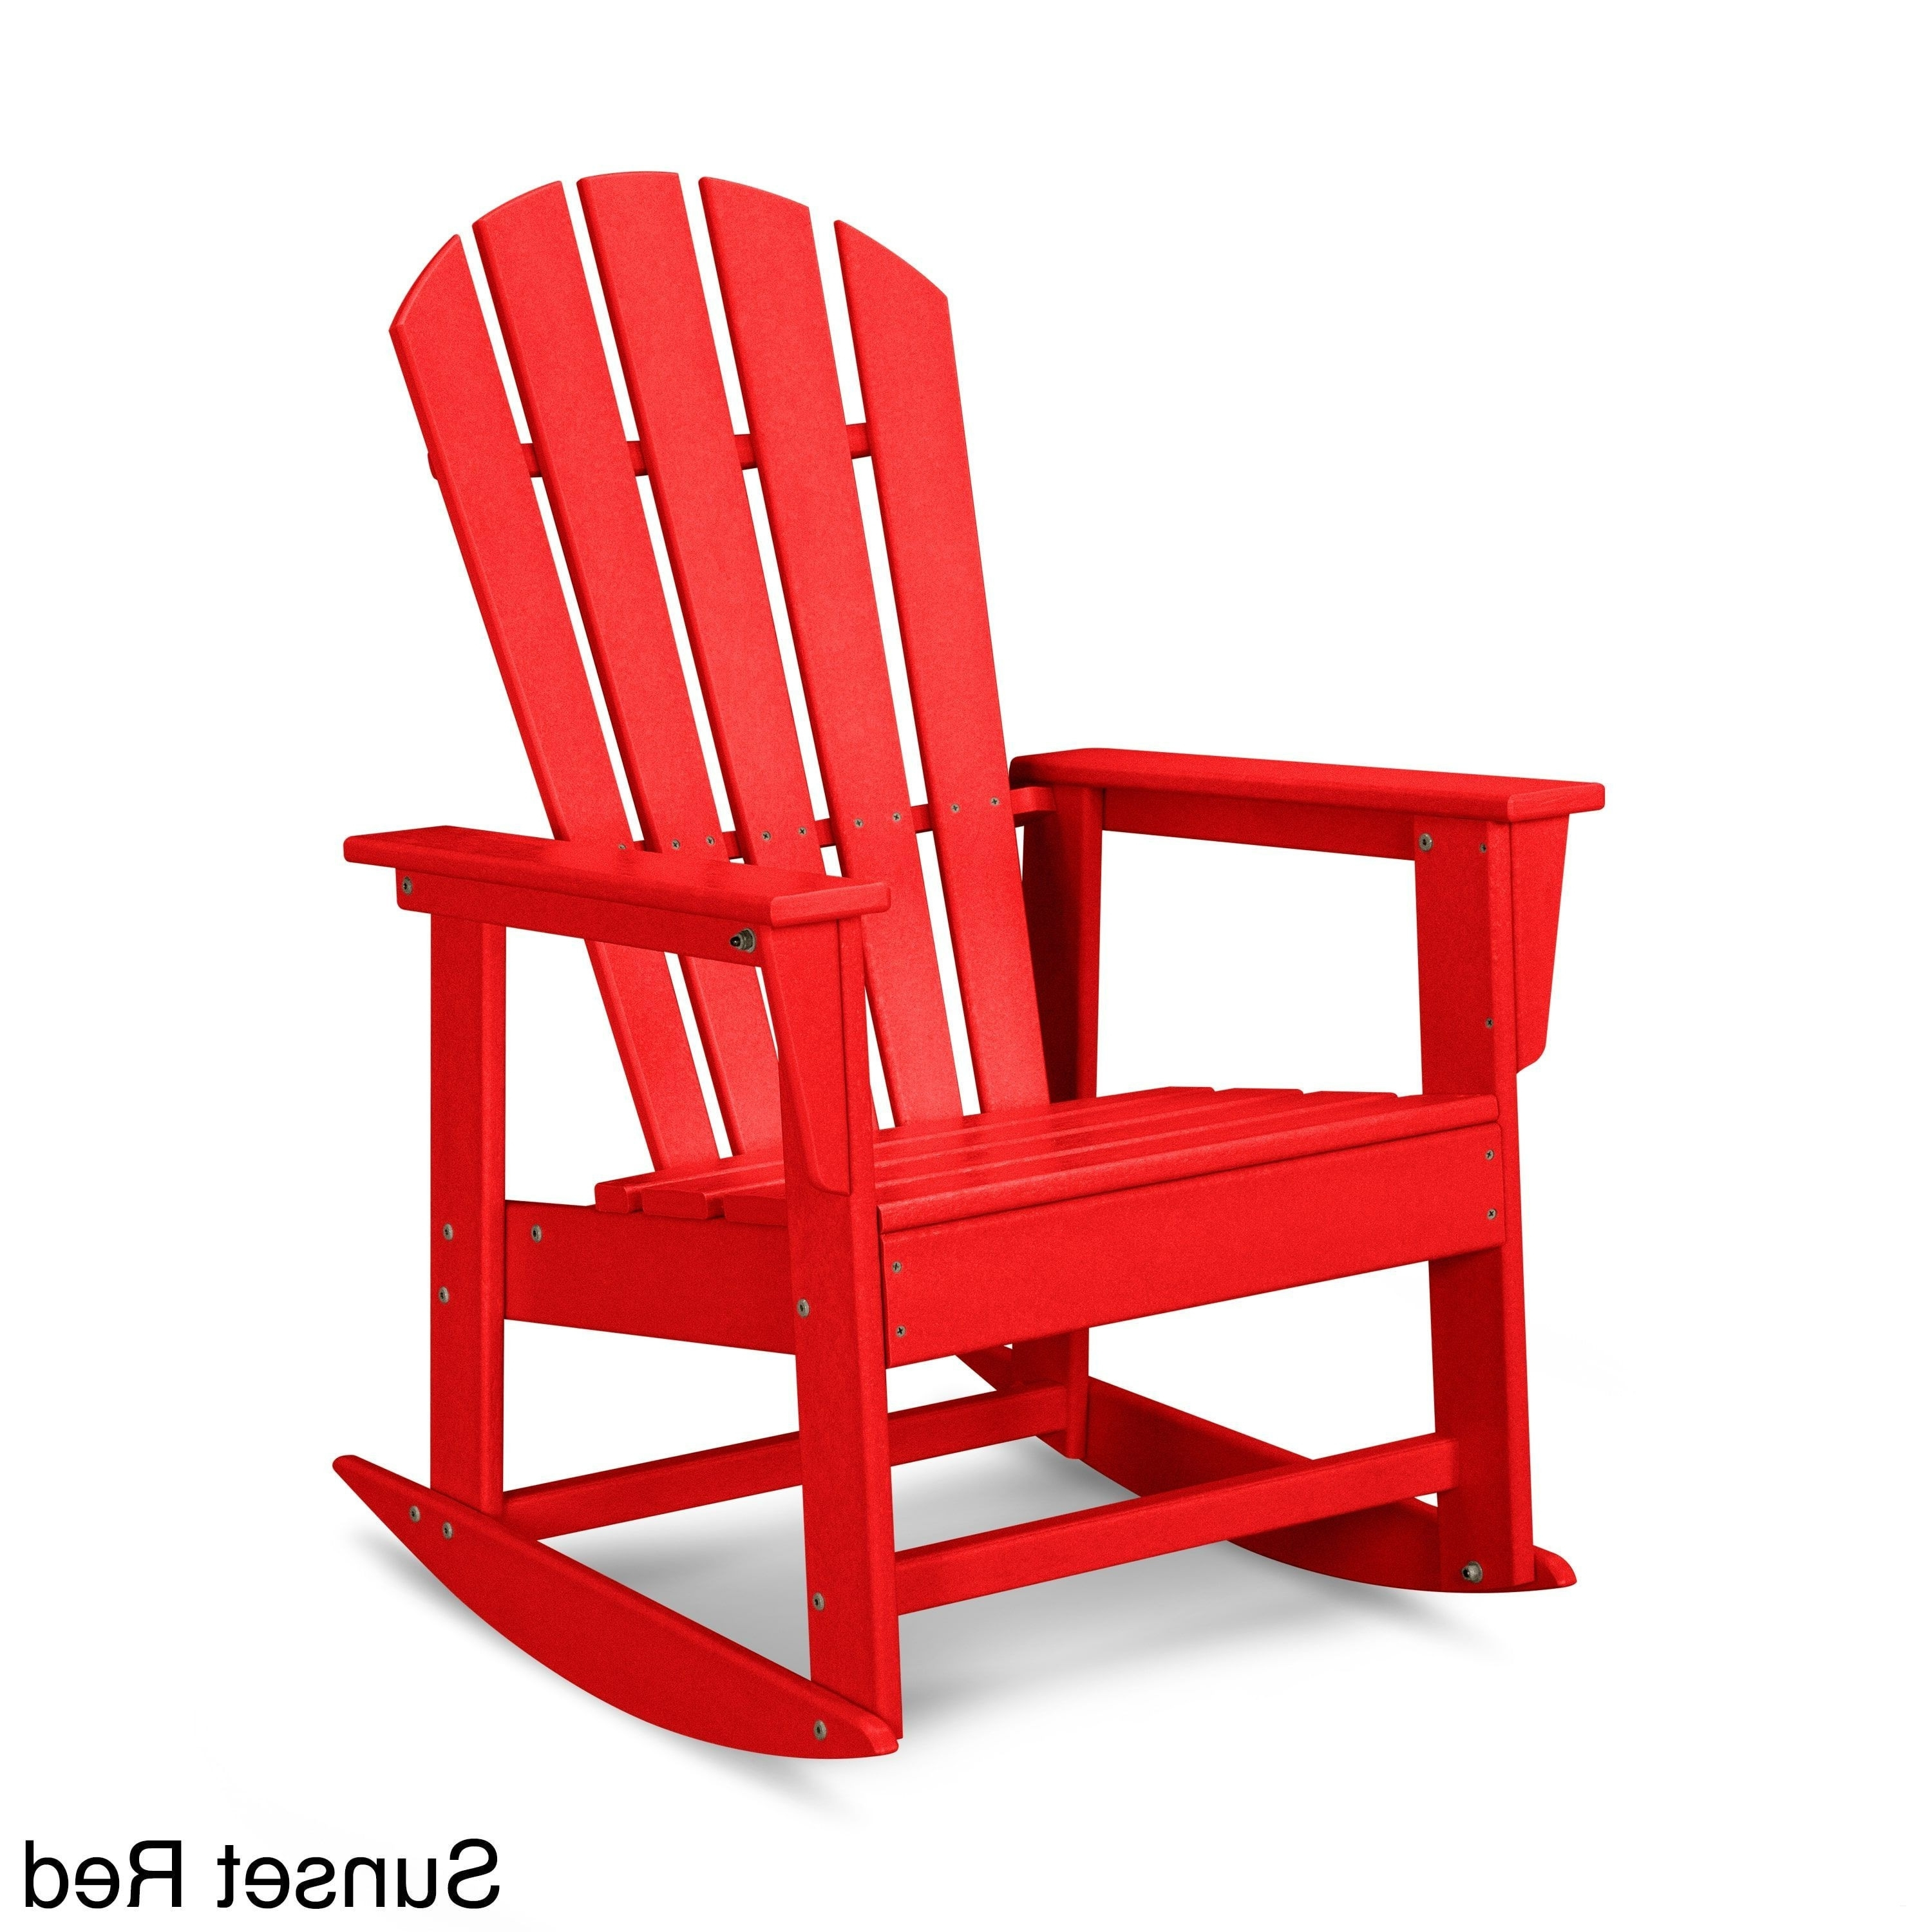 2017 Red Patio Rocking Chairs Throughout Red Outdoor Rocking Chair – Attractive Red Patio Furniture Stunning (View 13 of 15)